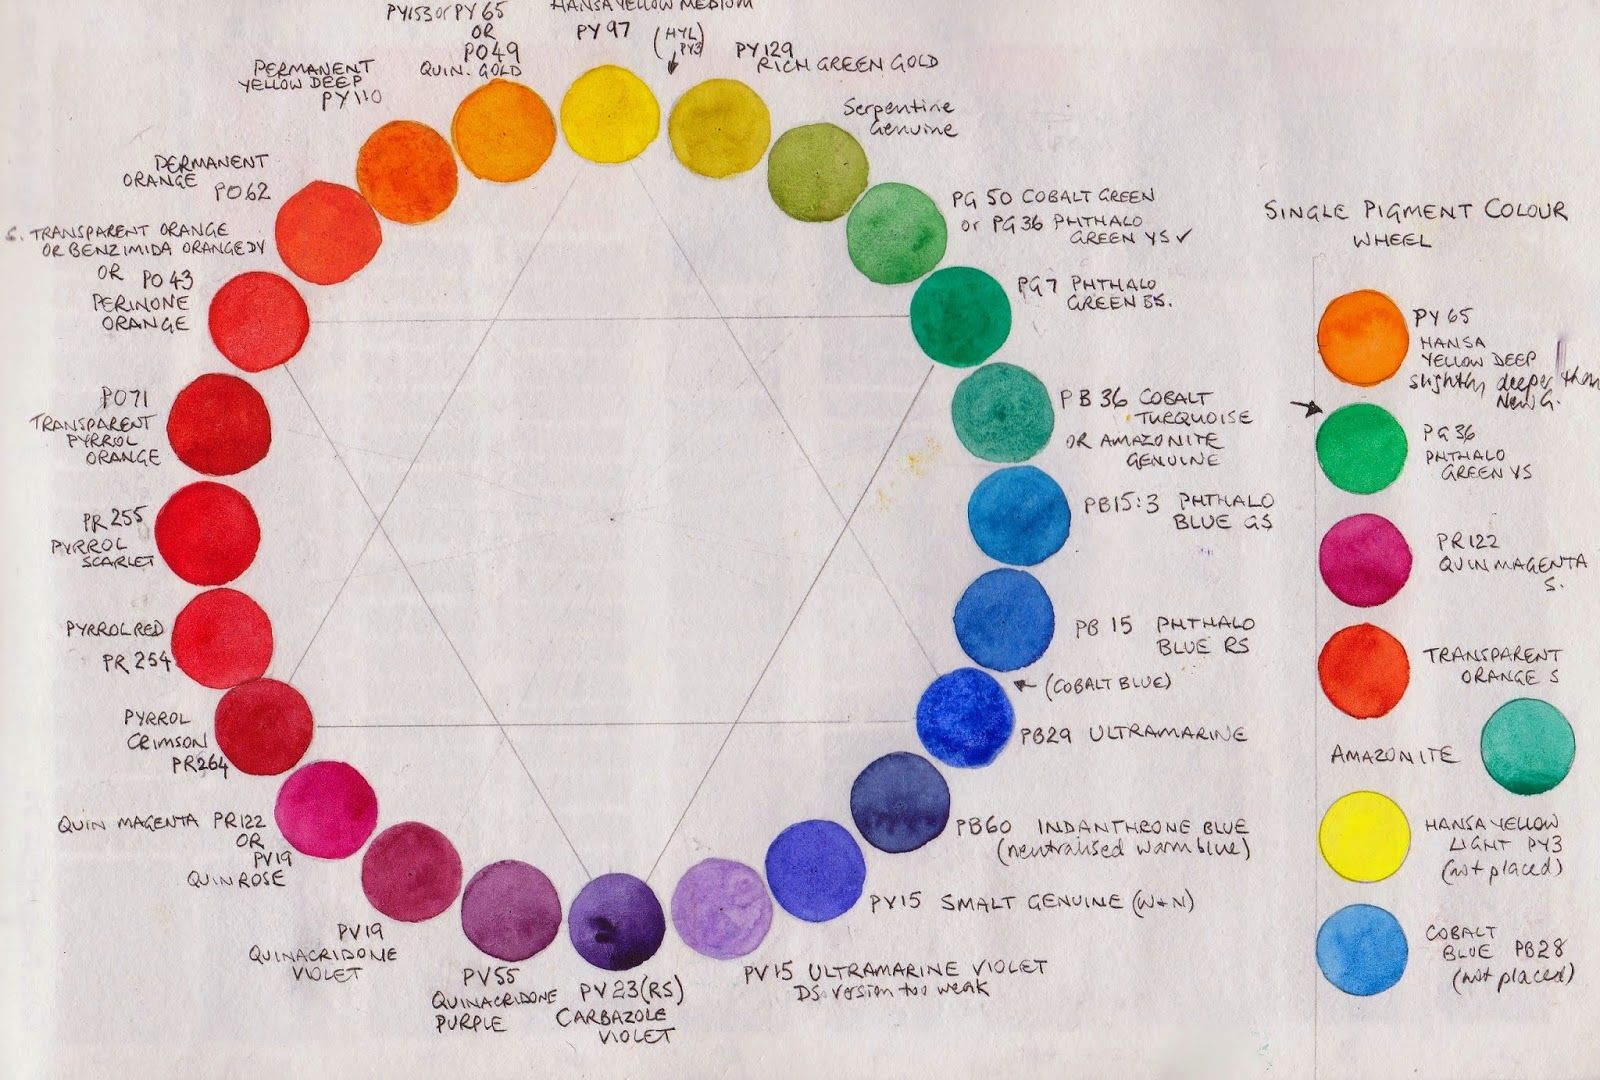 Jane Blundell Single Pigment Color Wheel Awesome Blog For